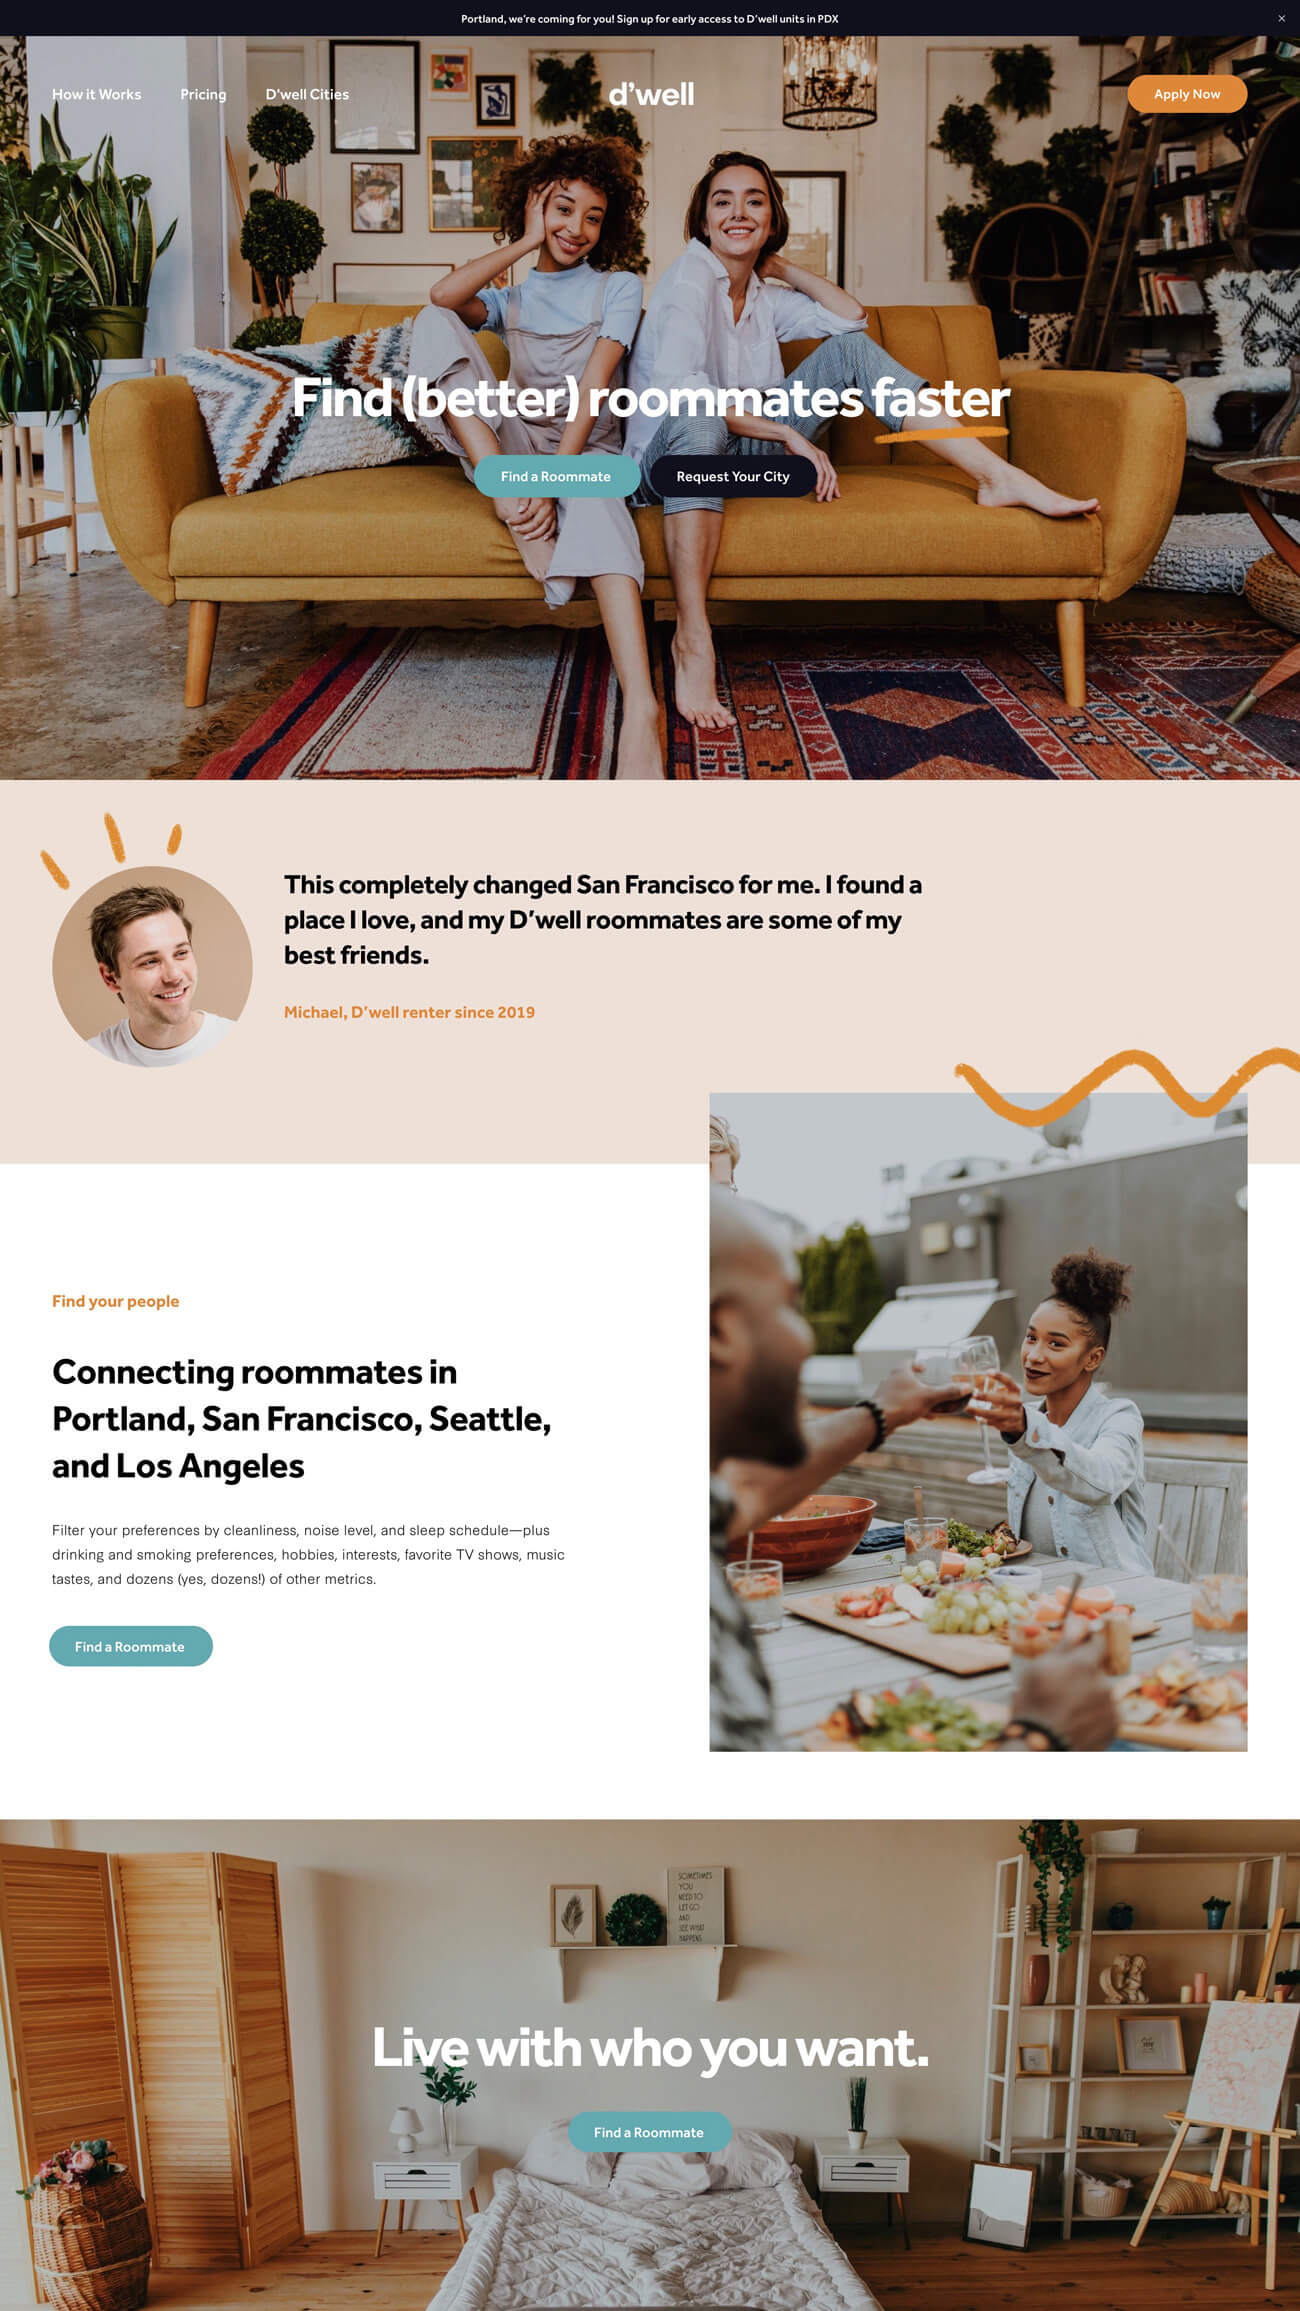 Landing Page - Playful illustrations, quirky colors, and social imagery told the D'well story, with prominent call-to-actions encouraging signups throughout the site.